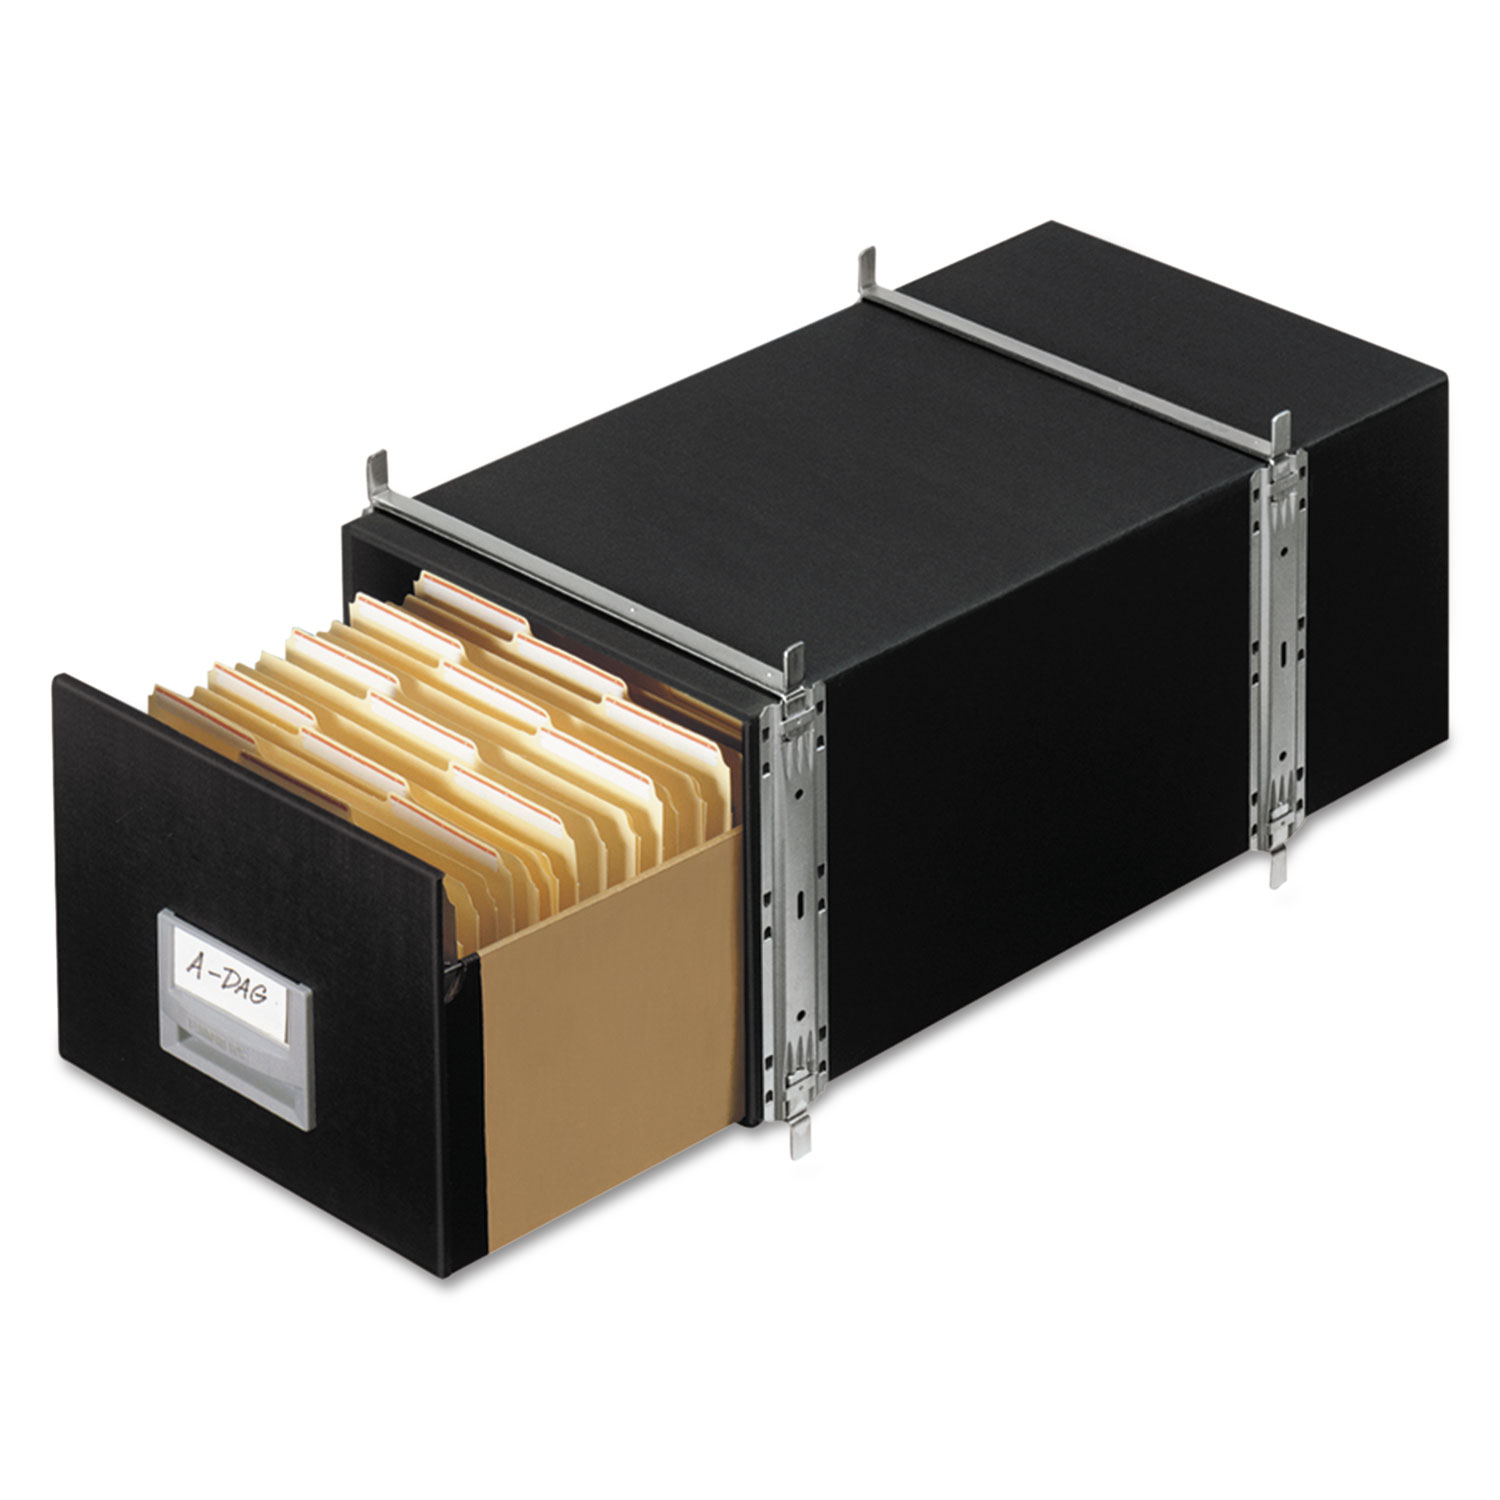 Bankers Box STAXONSTEEL Storage Box Drawer, Letter, Steel Frame, Black, 6/Carton